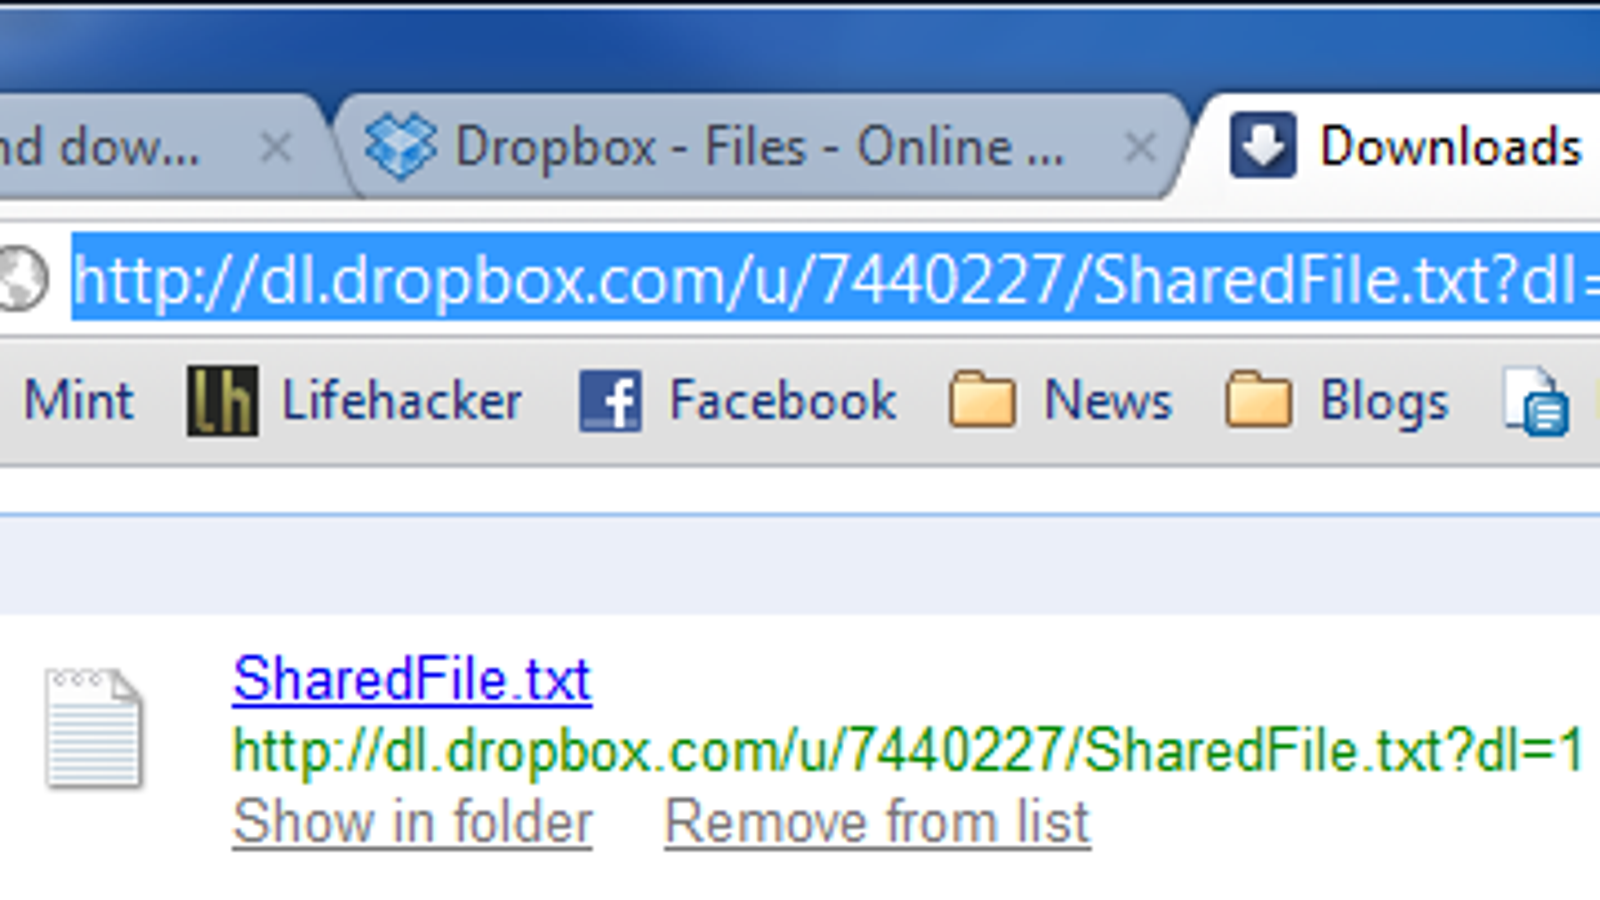 Make Dropbox Public Links Download Files Instead of Viewing